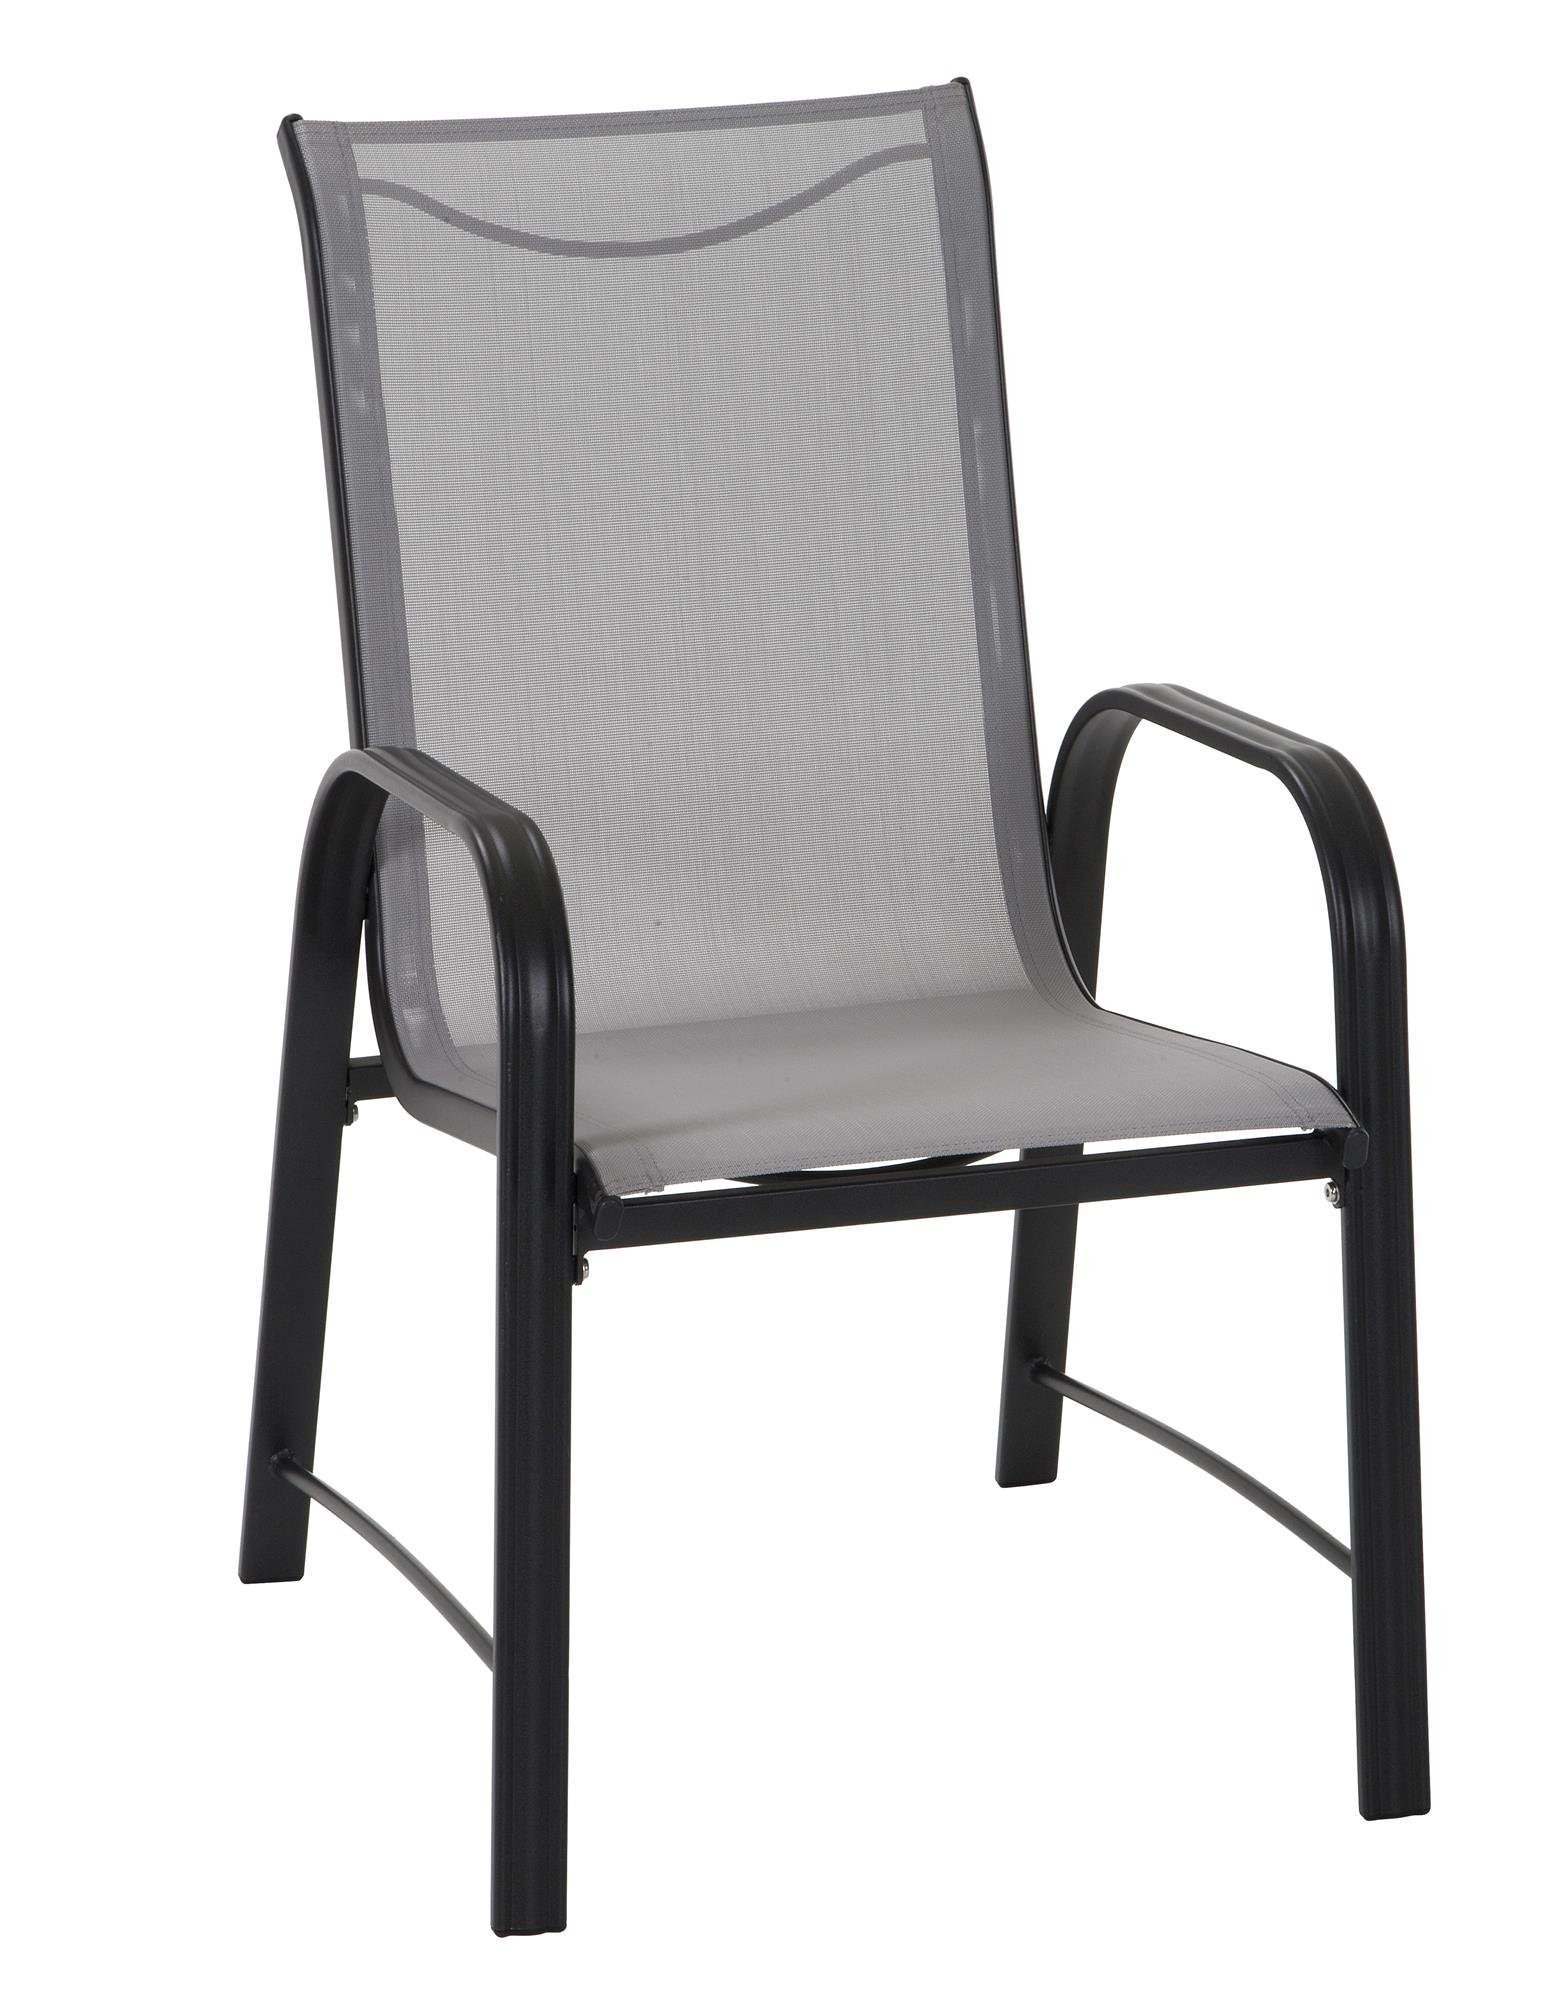 Cosco 88645GLGE Paloma Patio Steel Frame Dining Chairs, Light Gray by Cosco